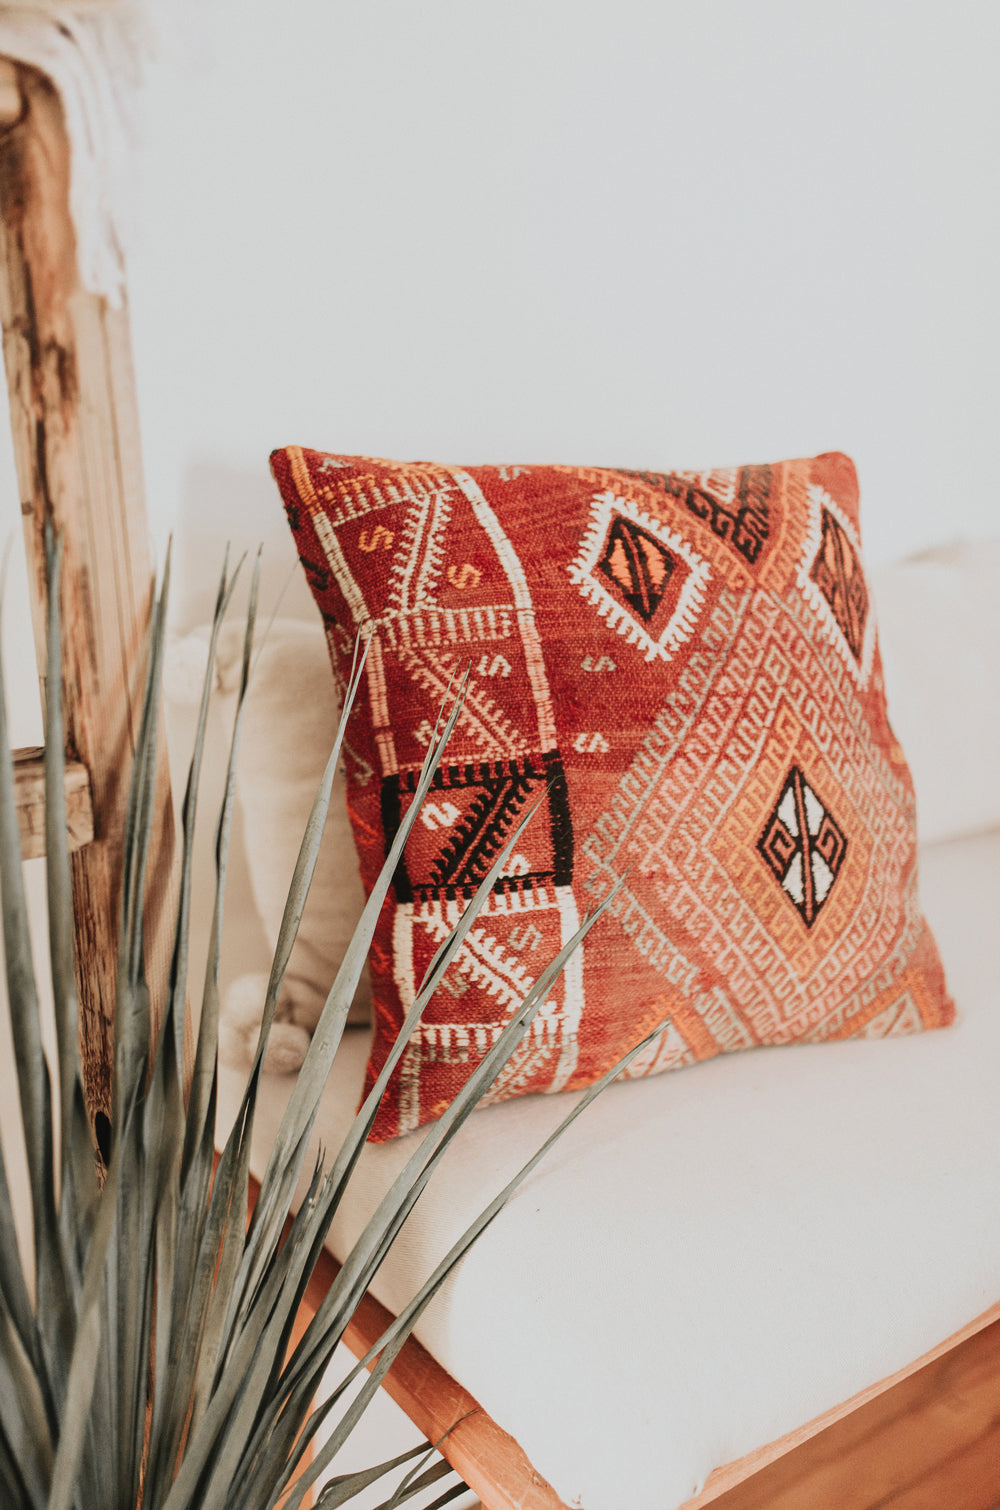 Labyrinth Kilim Pillow